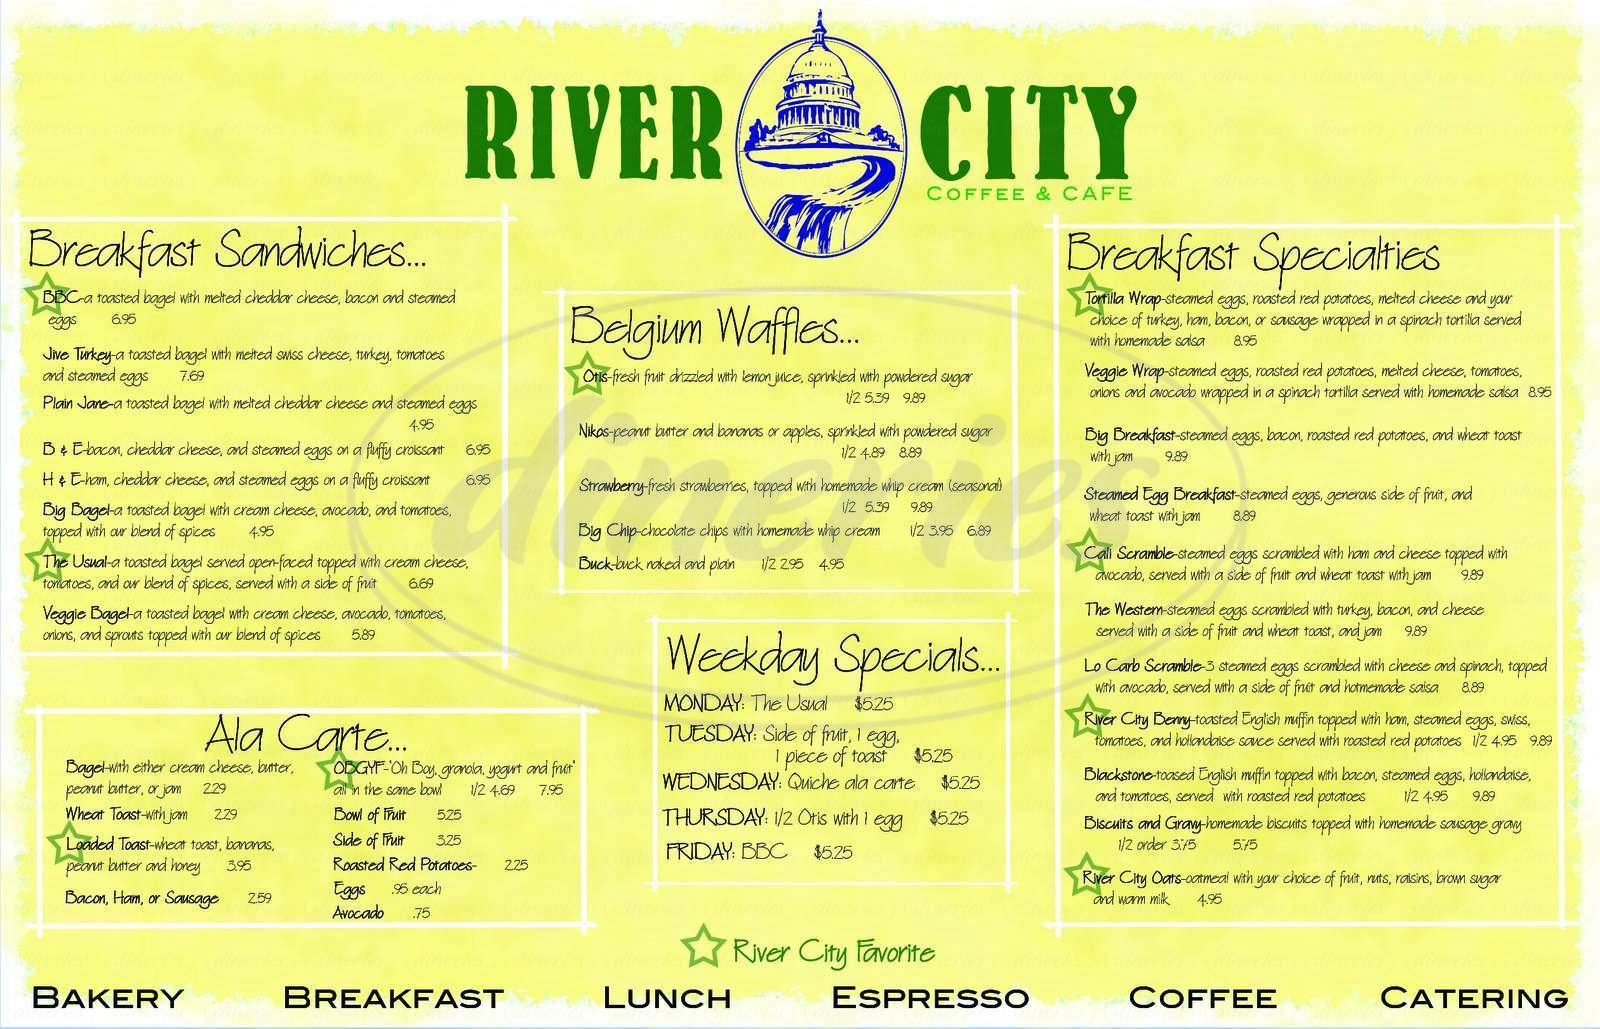 menu for River City Coffee & Cafe